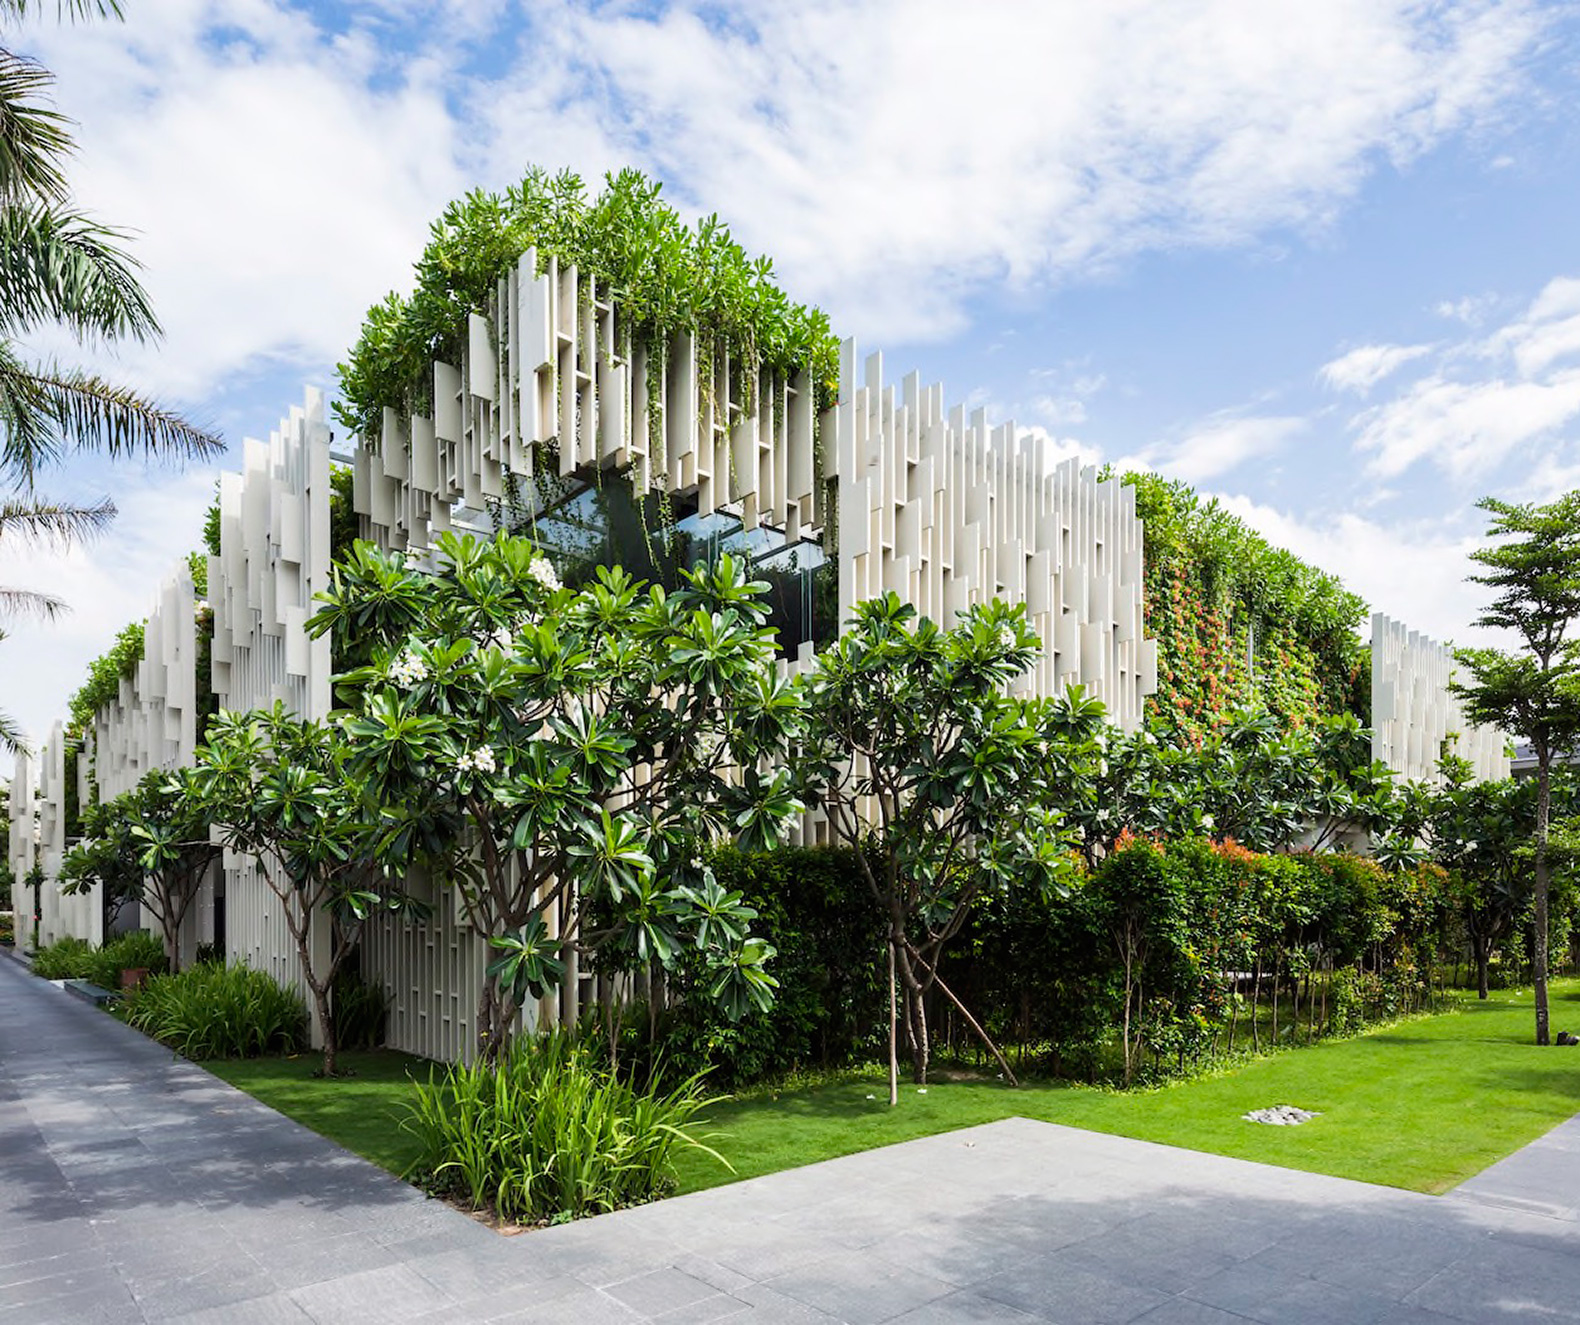 Lush living plants engulf the green roofed Pure Spa in Vietnam